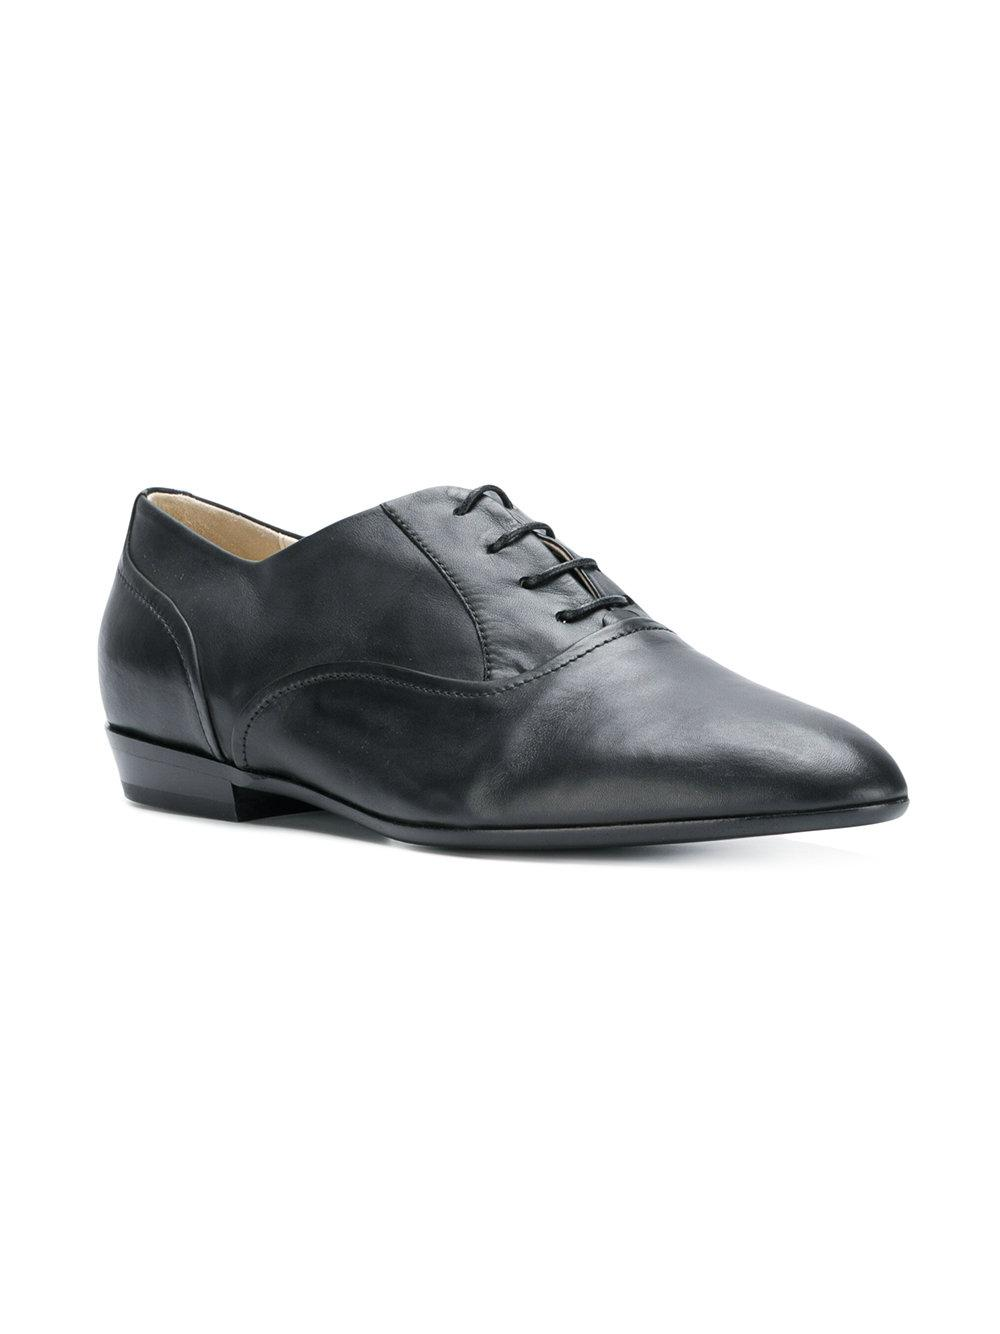 SARTORE Pointed toe oxford shoes Free Shipping Cheapest Quality Free Shipping Outlet 8eylS